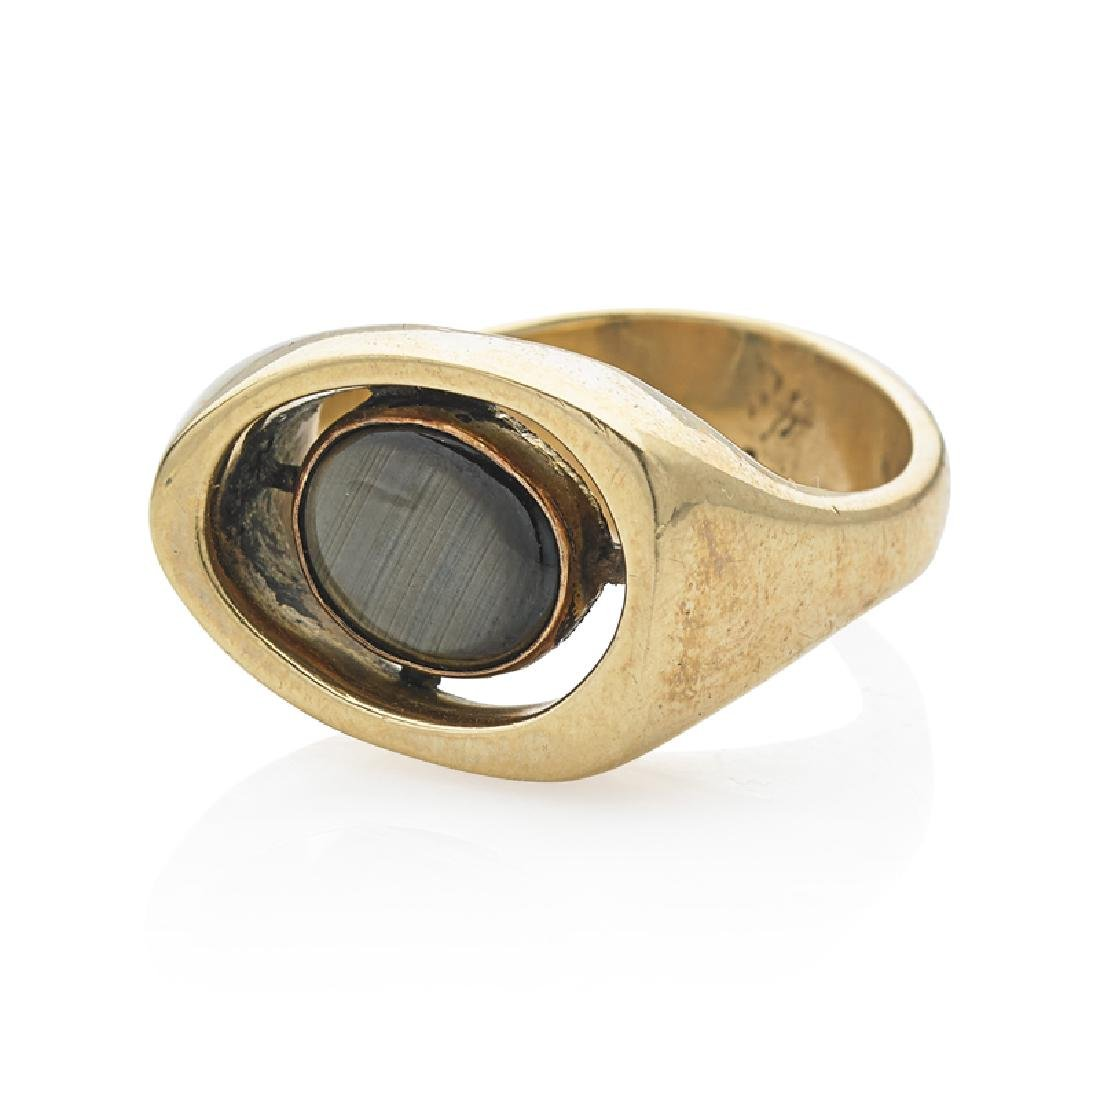 MODERNIST BLACK STAR SAPPHIRE & YELLOW GOLD RING